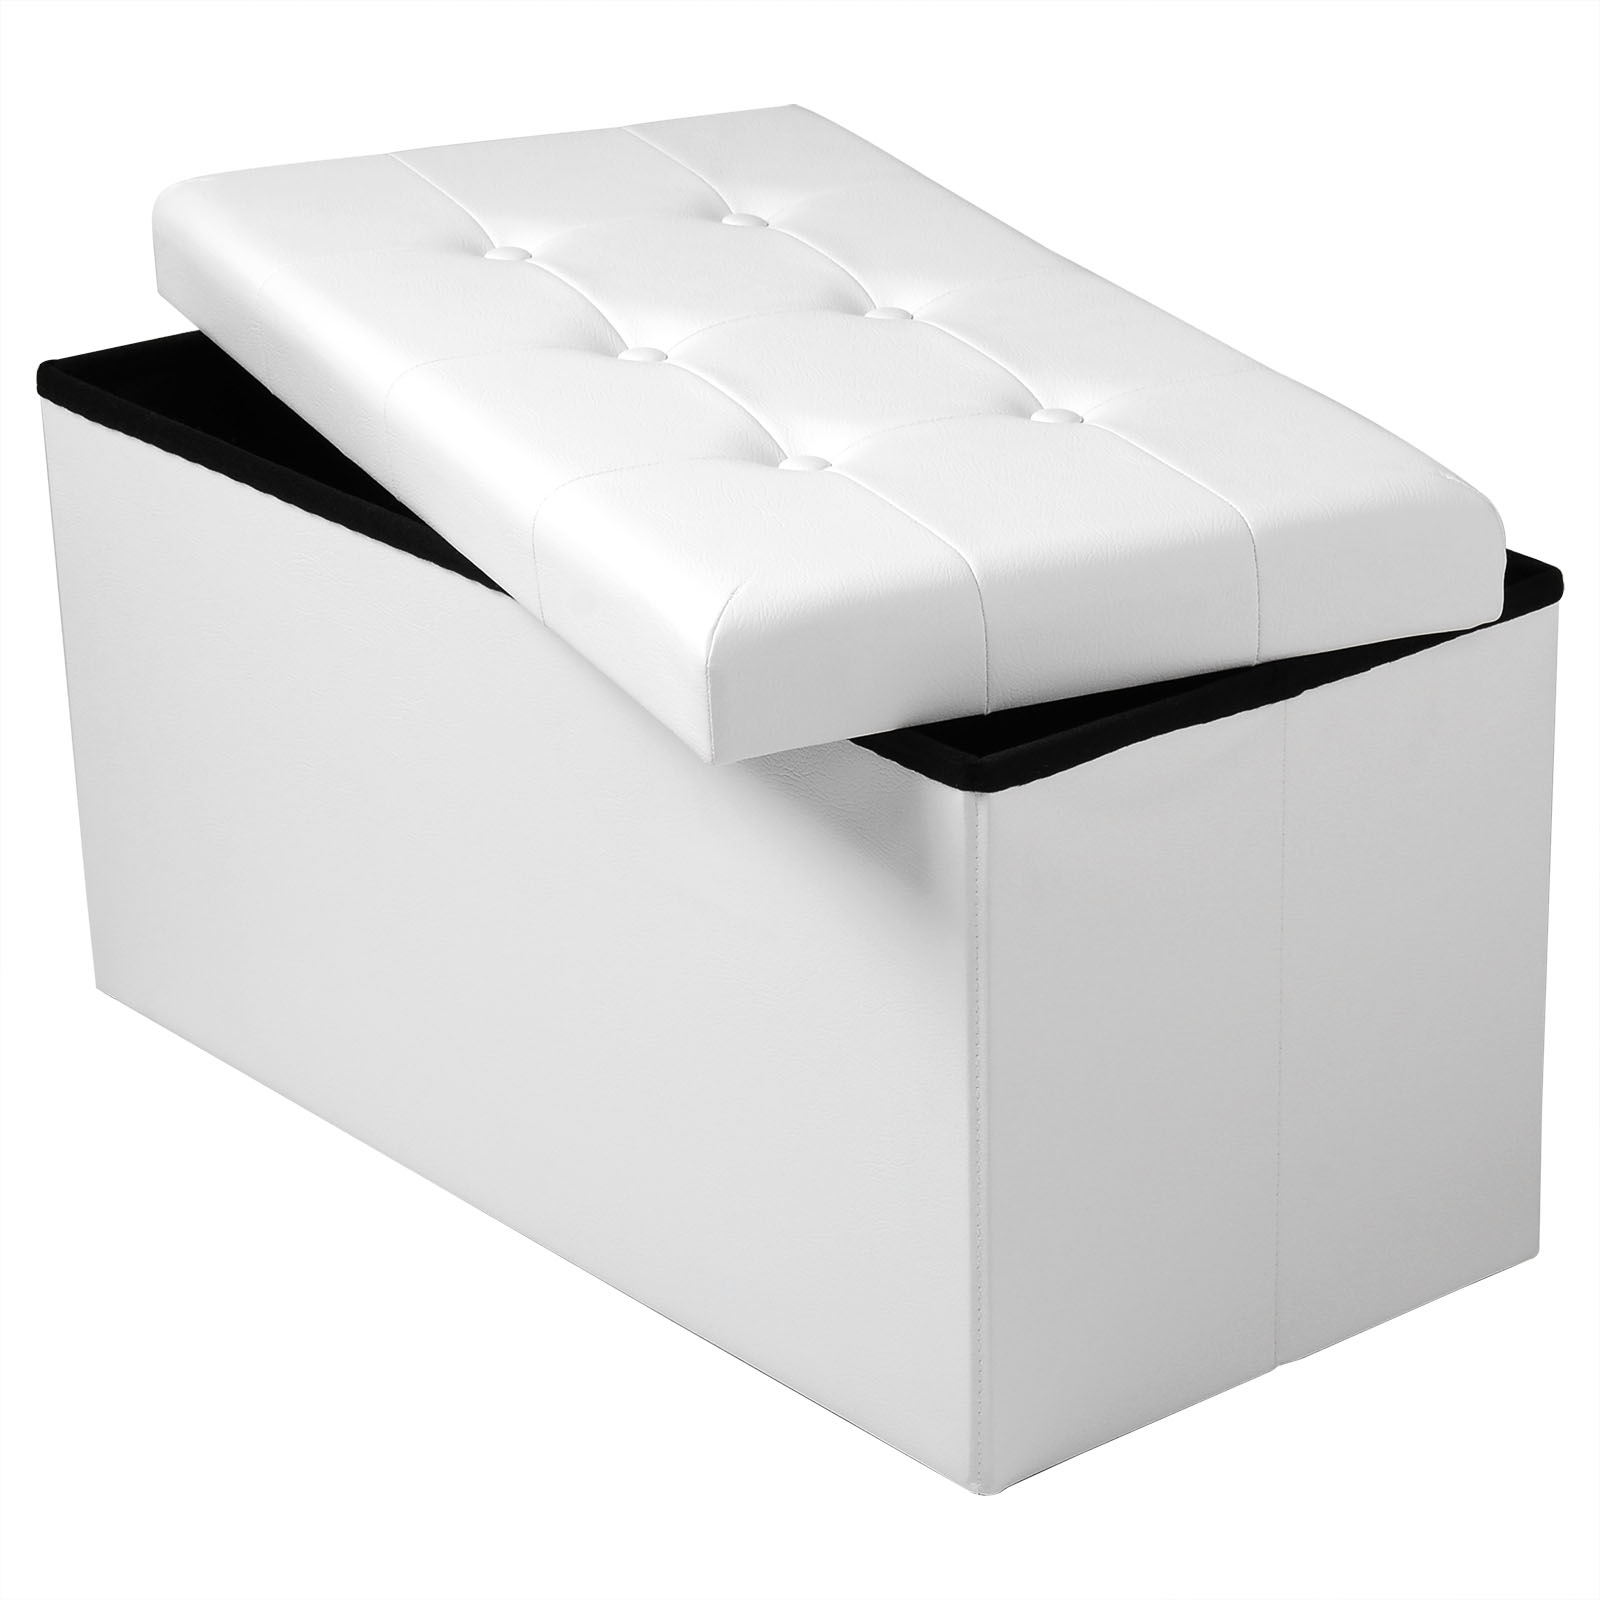 Kids Collapsible Ottoman Toy Books Box Storage Seat Chest: Ottoman Storage Box SH16ws Foldable Faux Leather Bench